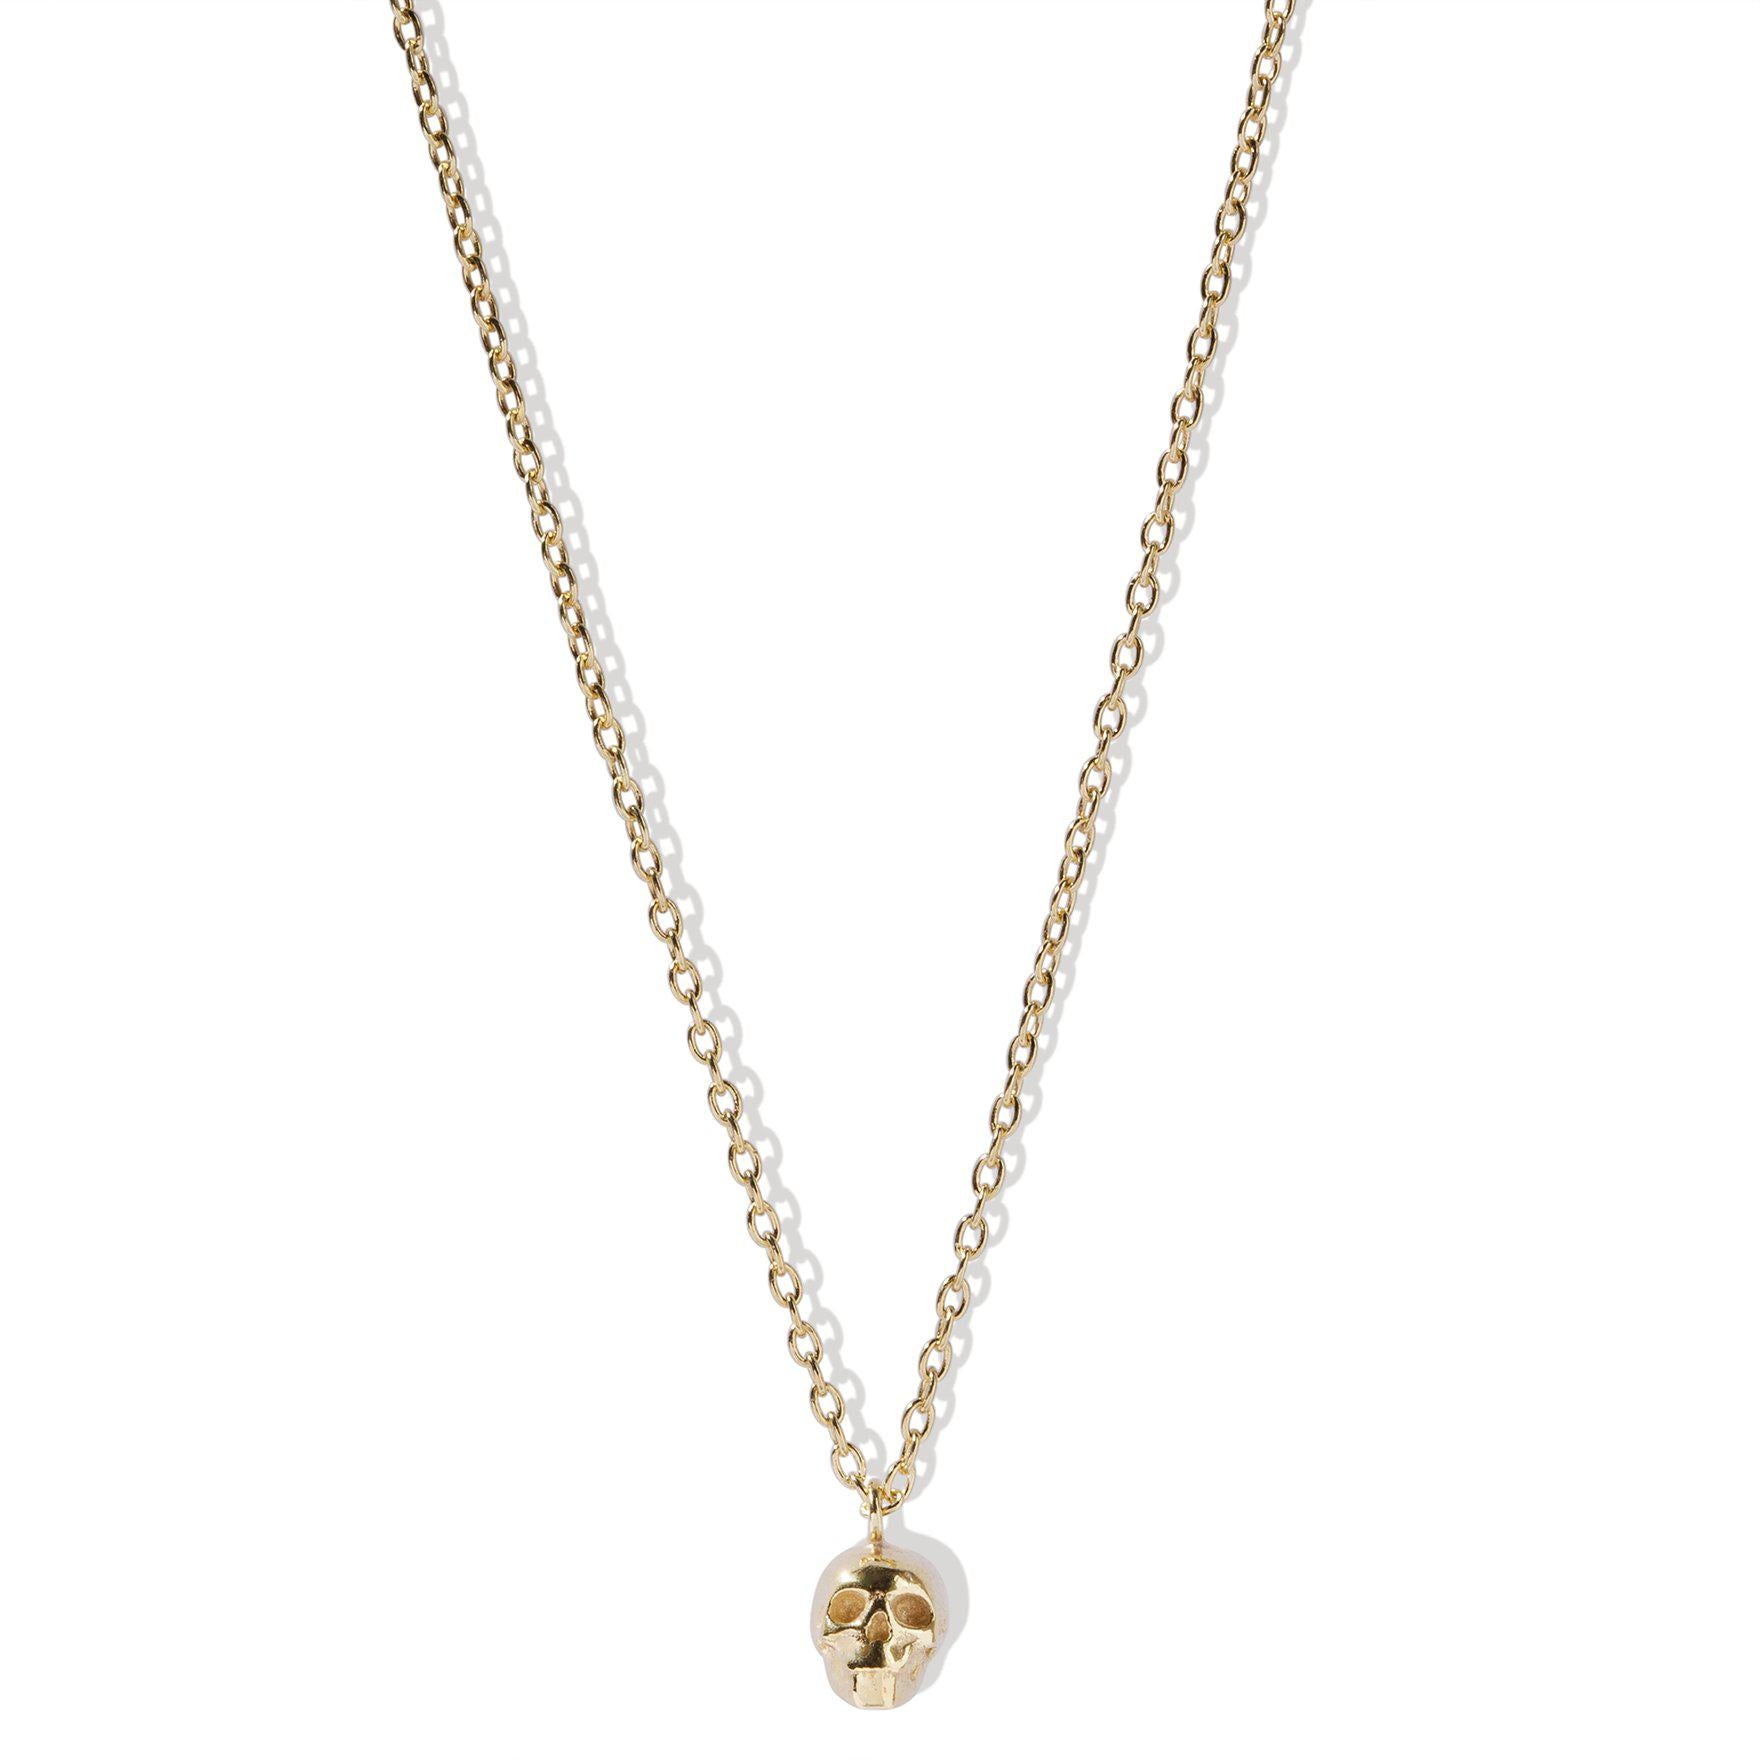 The Single Skull Necklace - Gold Plated